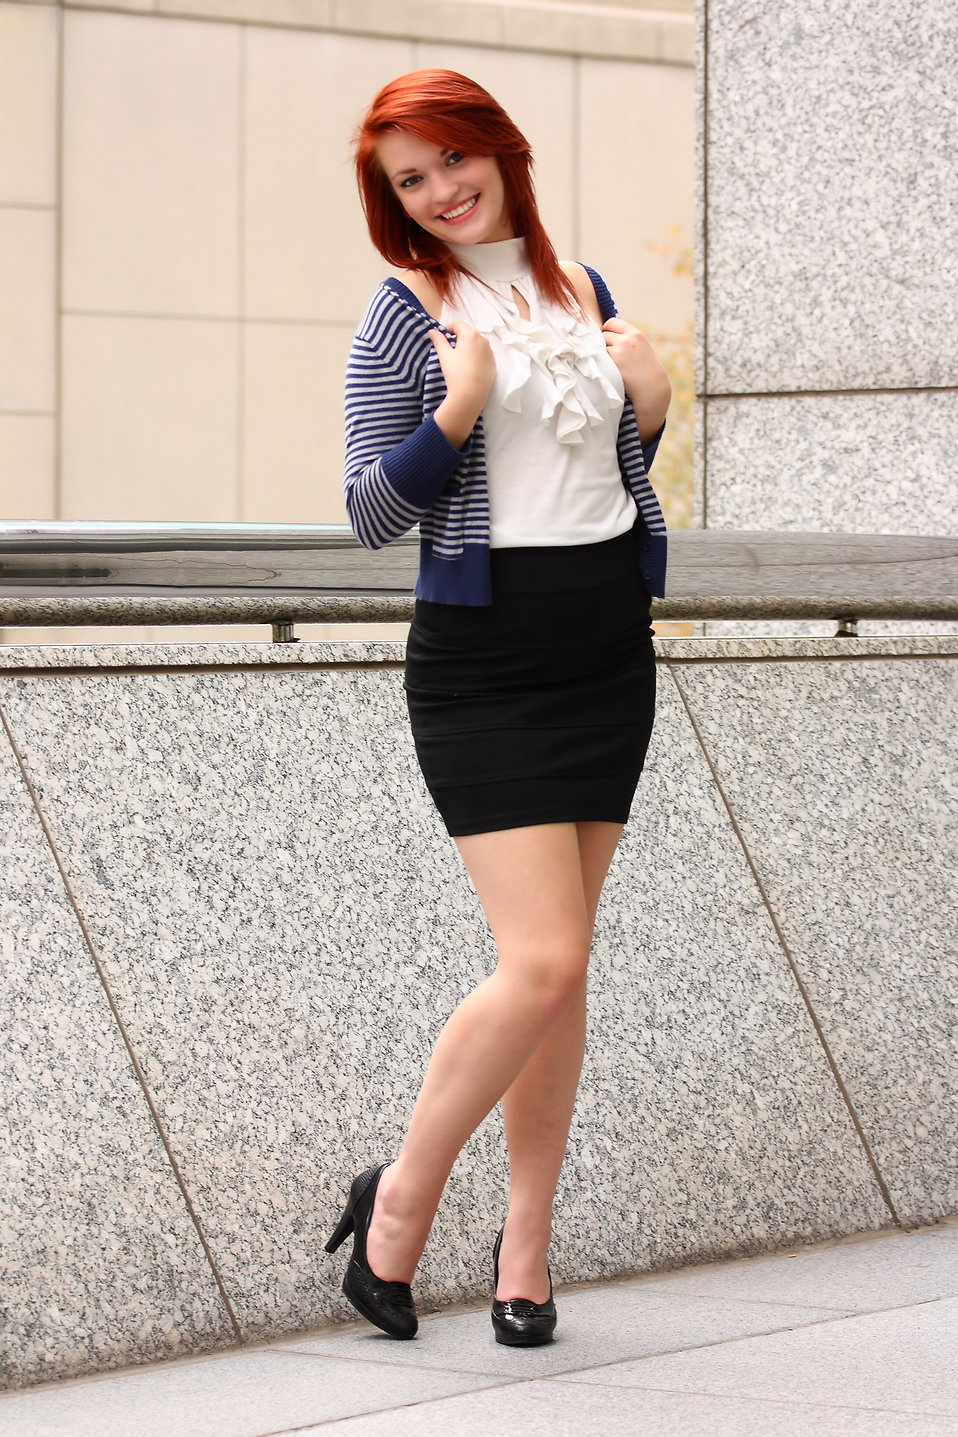 14849-a-beautiful-young-woman-in-business-attire-pv.jpg